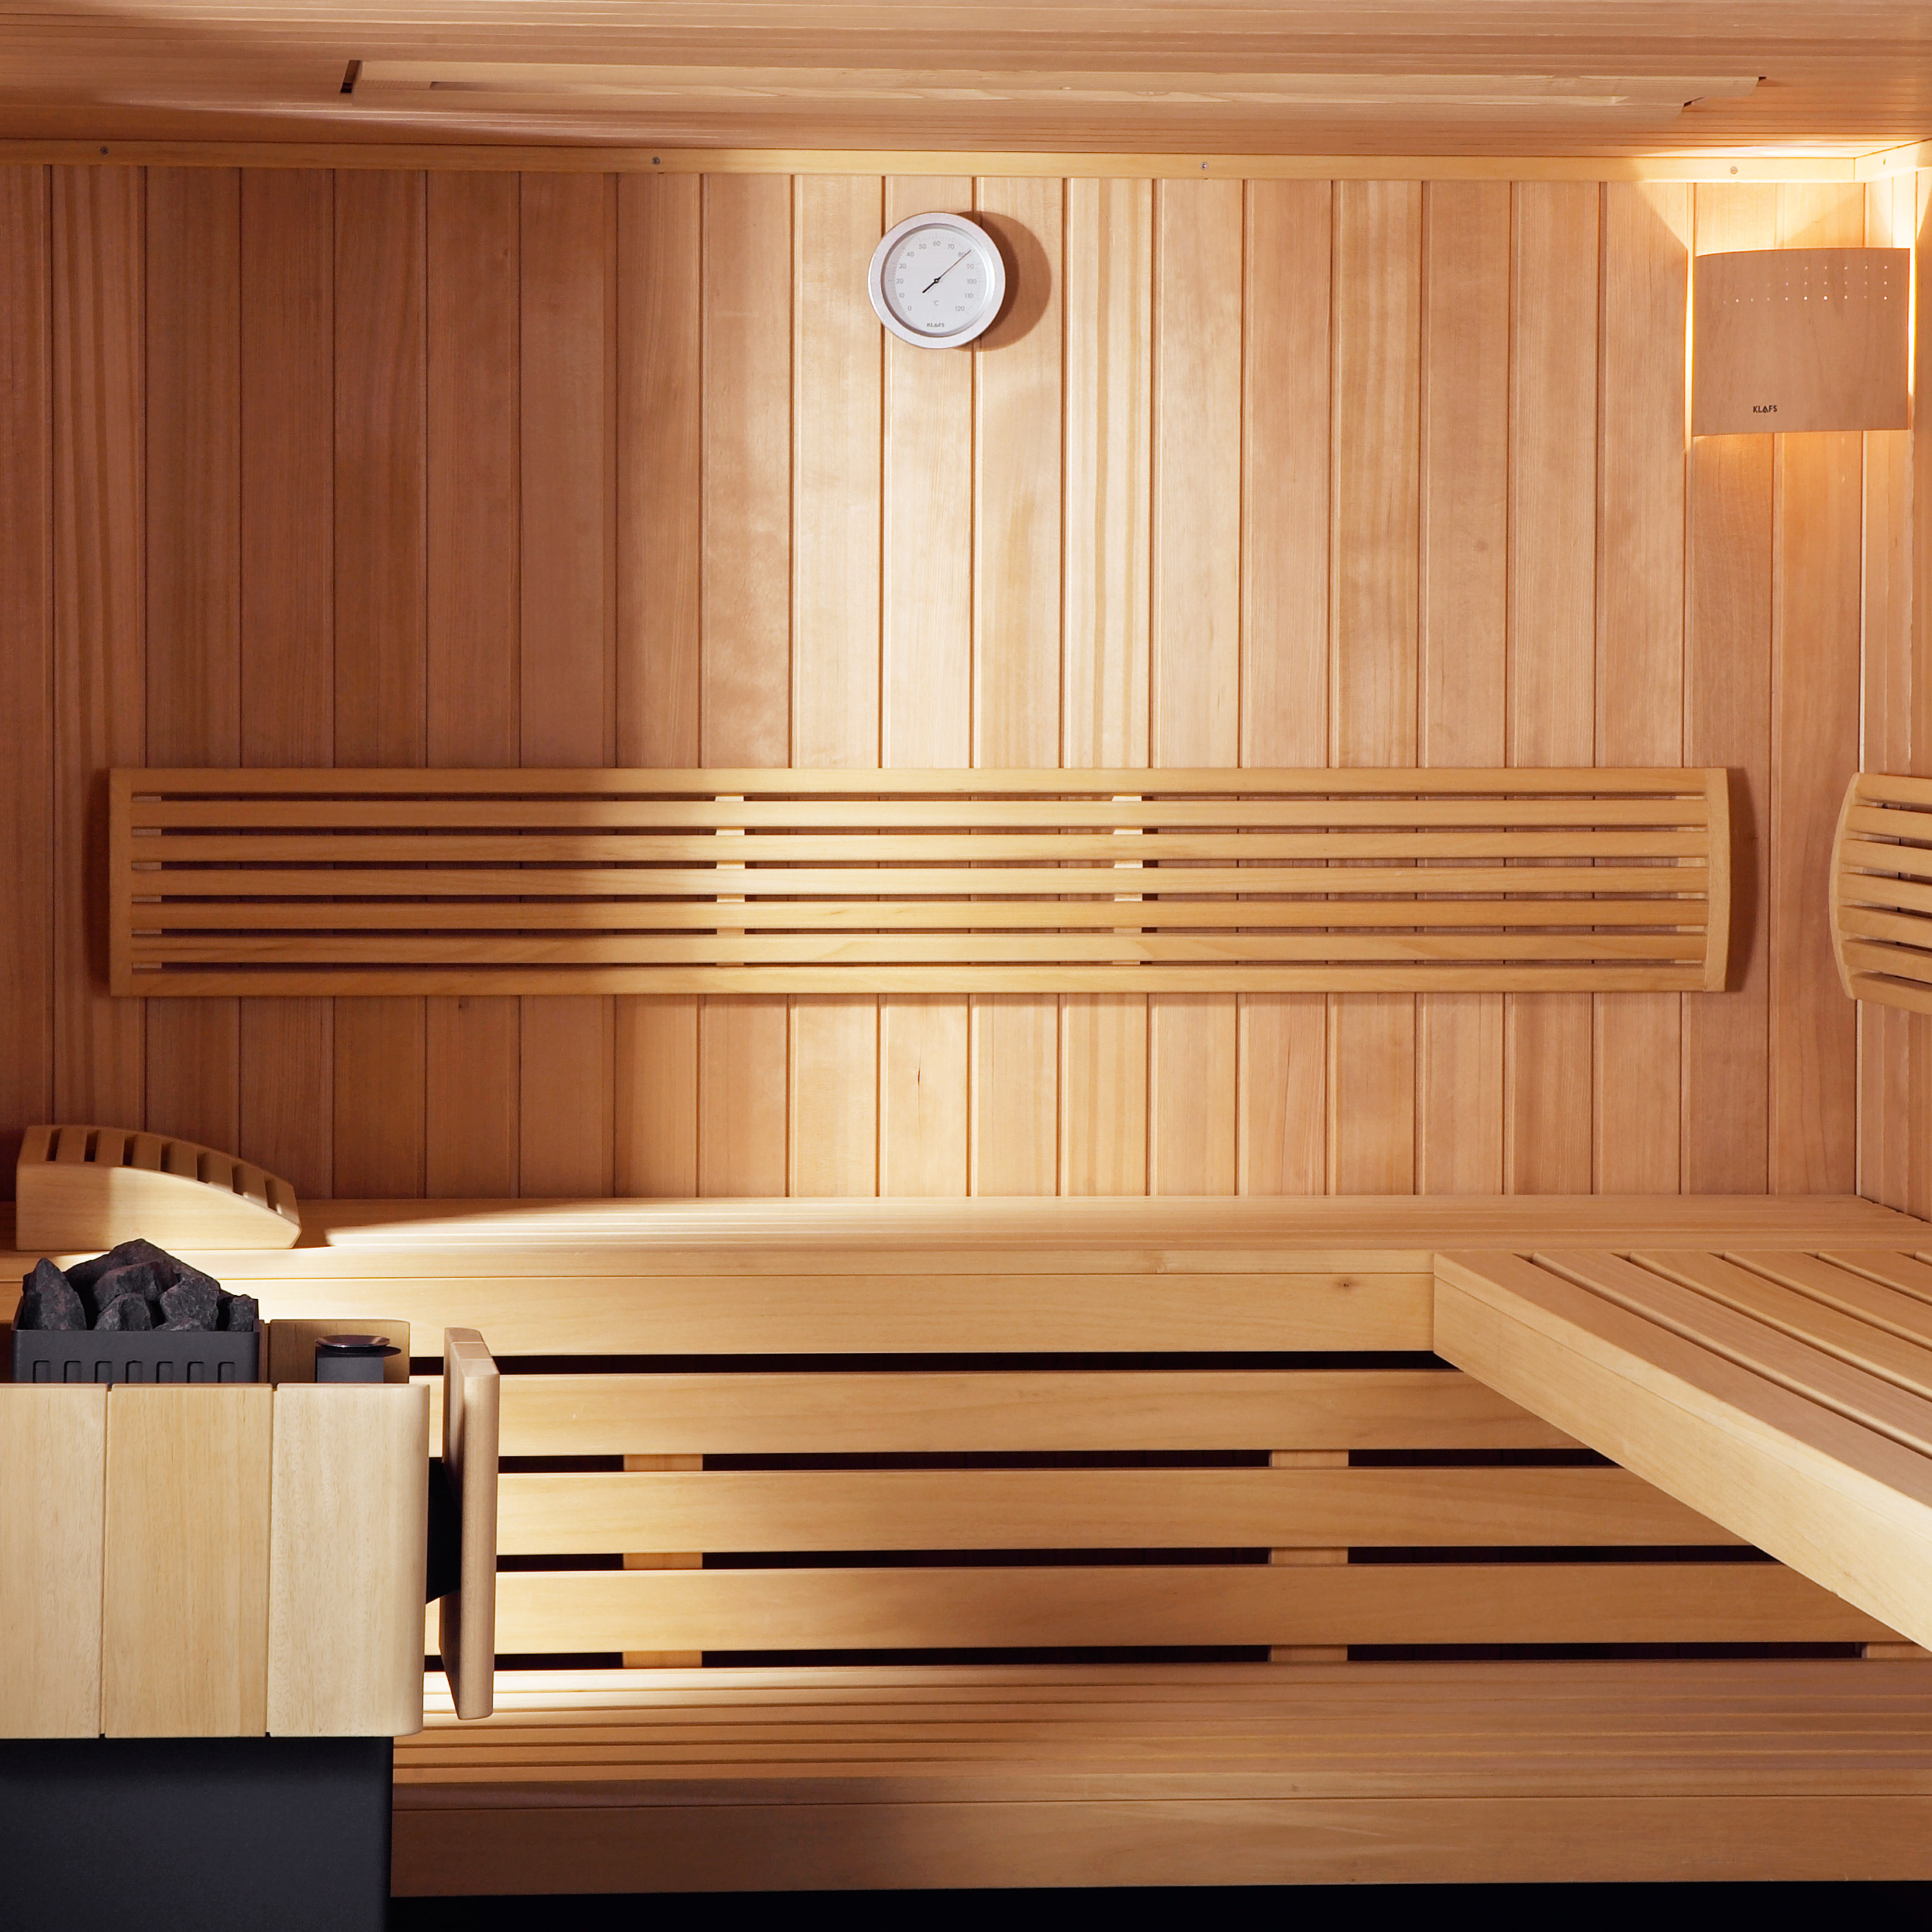 sauna home der perfekte einstieg in die welt der sauna. Black Bedroom Furniture Sets. Home Design Ideas